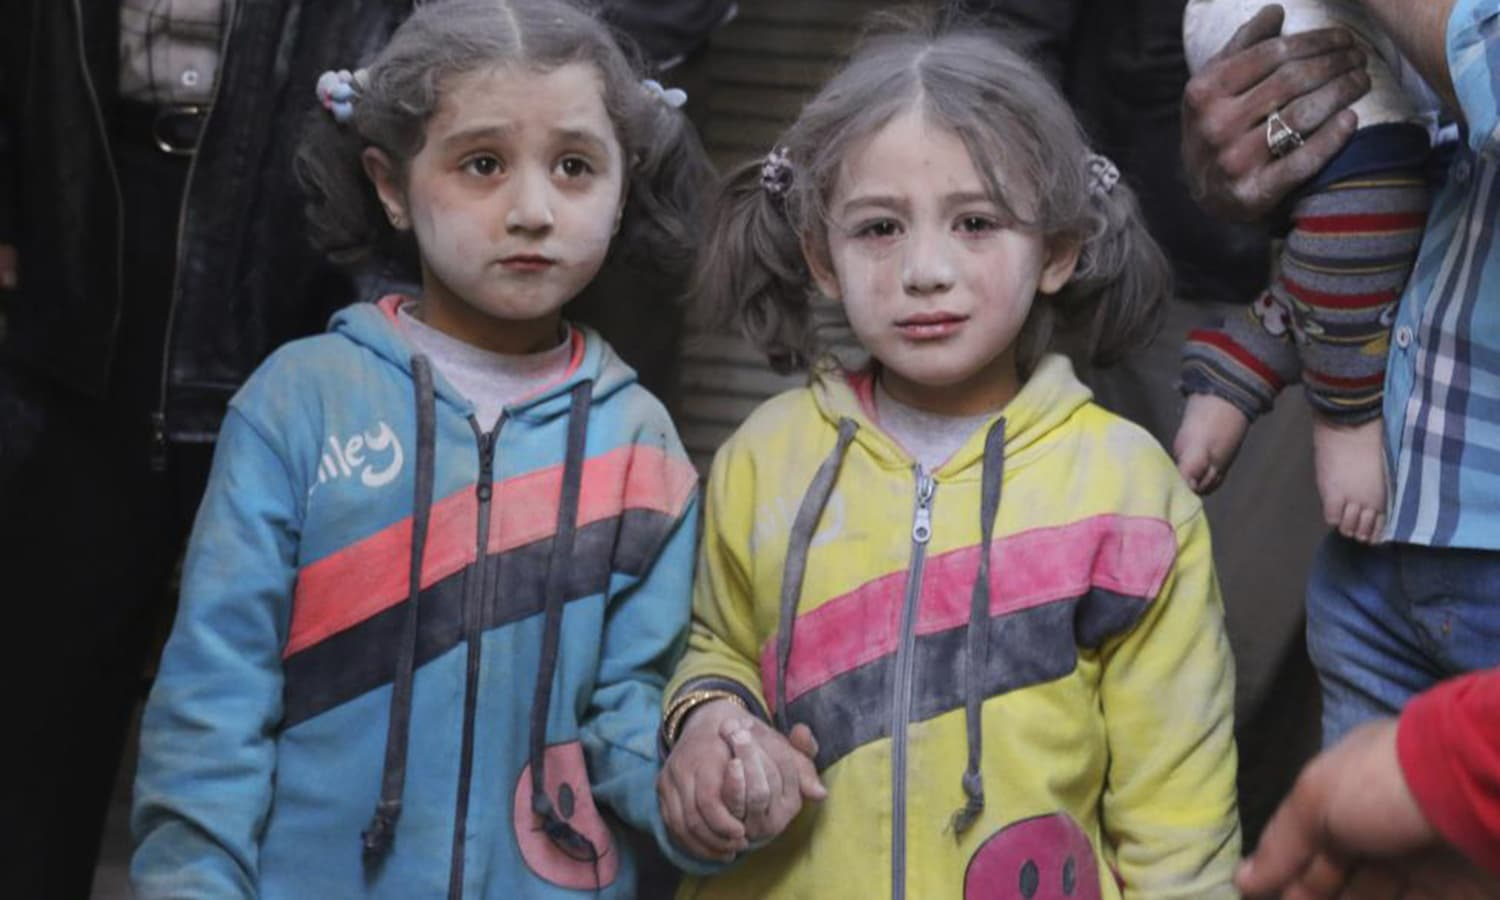 Girls who survived what activists said was a ground-to-ground missile attack by forces of Syria's President Bashar al-Assad, hold hands at Aleppo's Bab al-Hadeed district. — Reuters